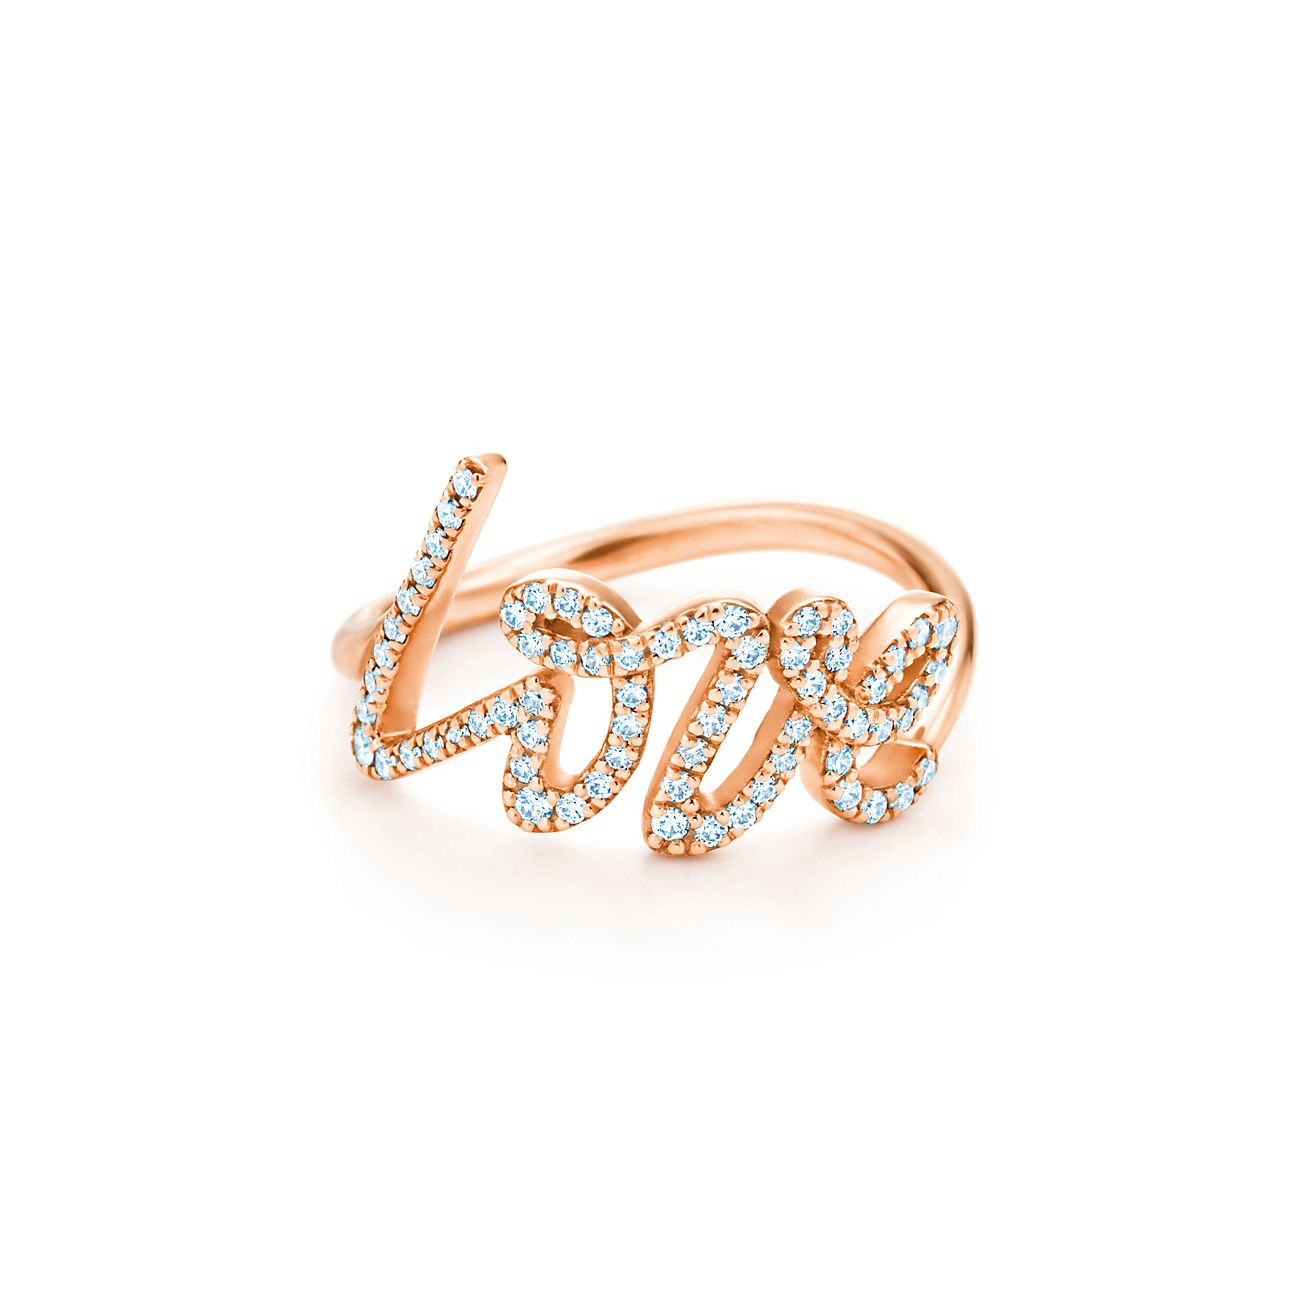 Paloma\'s Graffiti love ring in 18k rose gold with diamonds, small ...